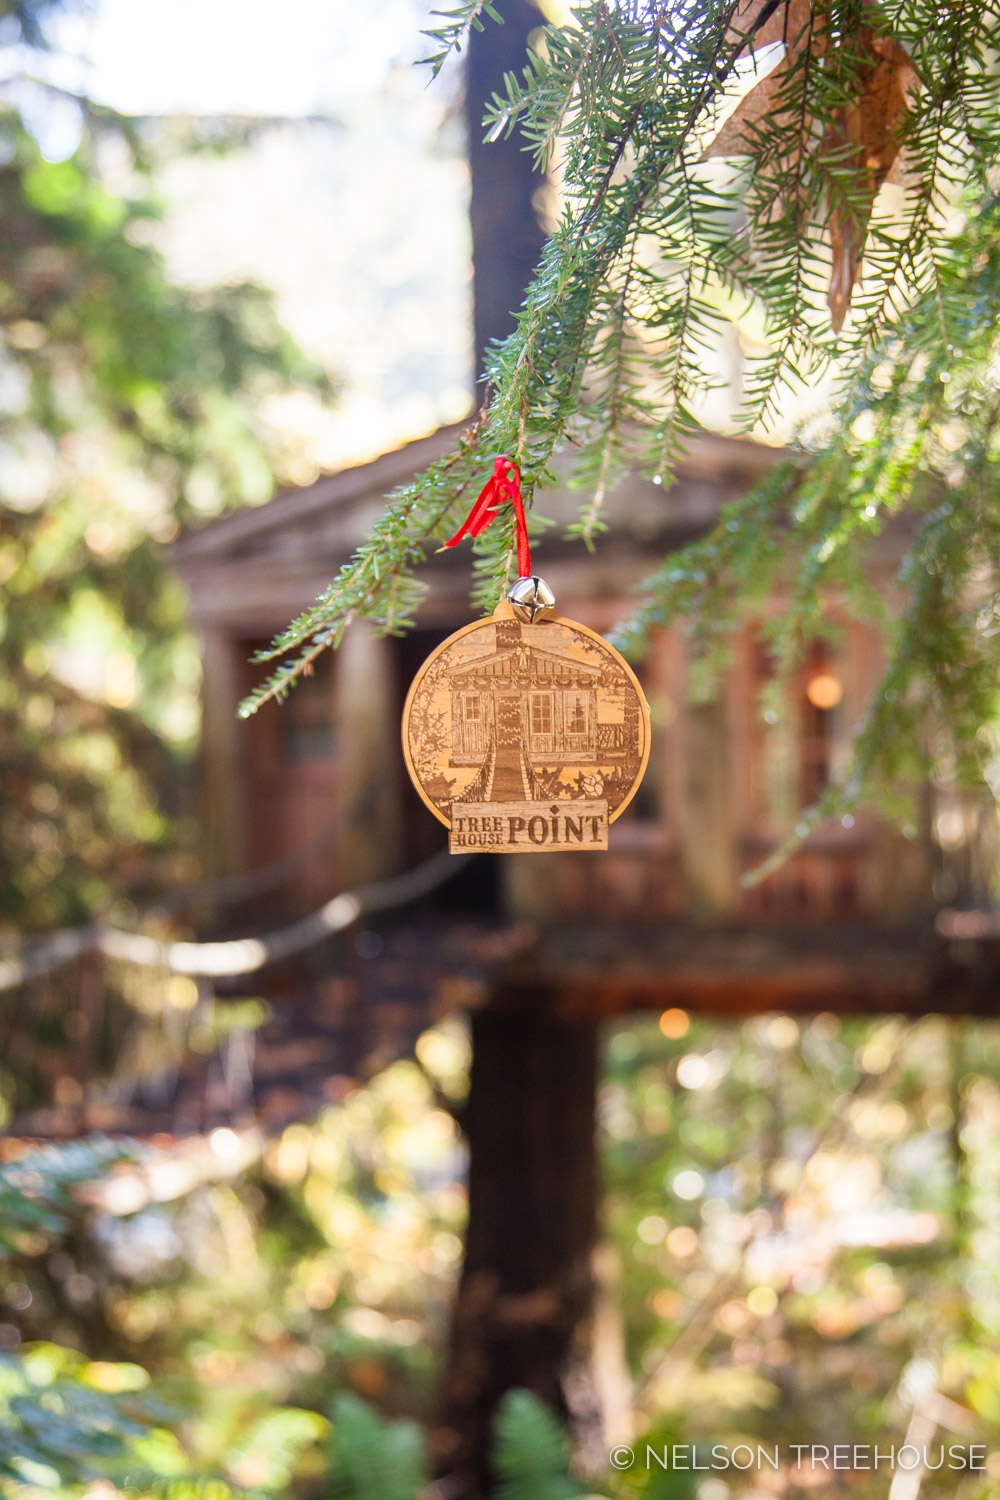 Temple of the Blue Moon Treehouse Point Ornament